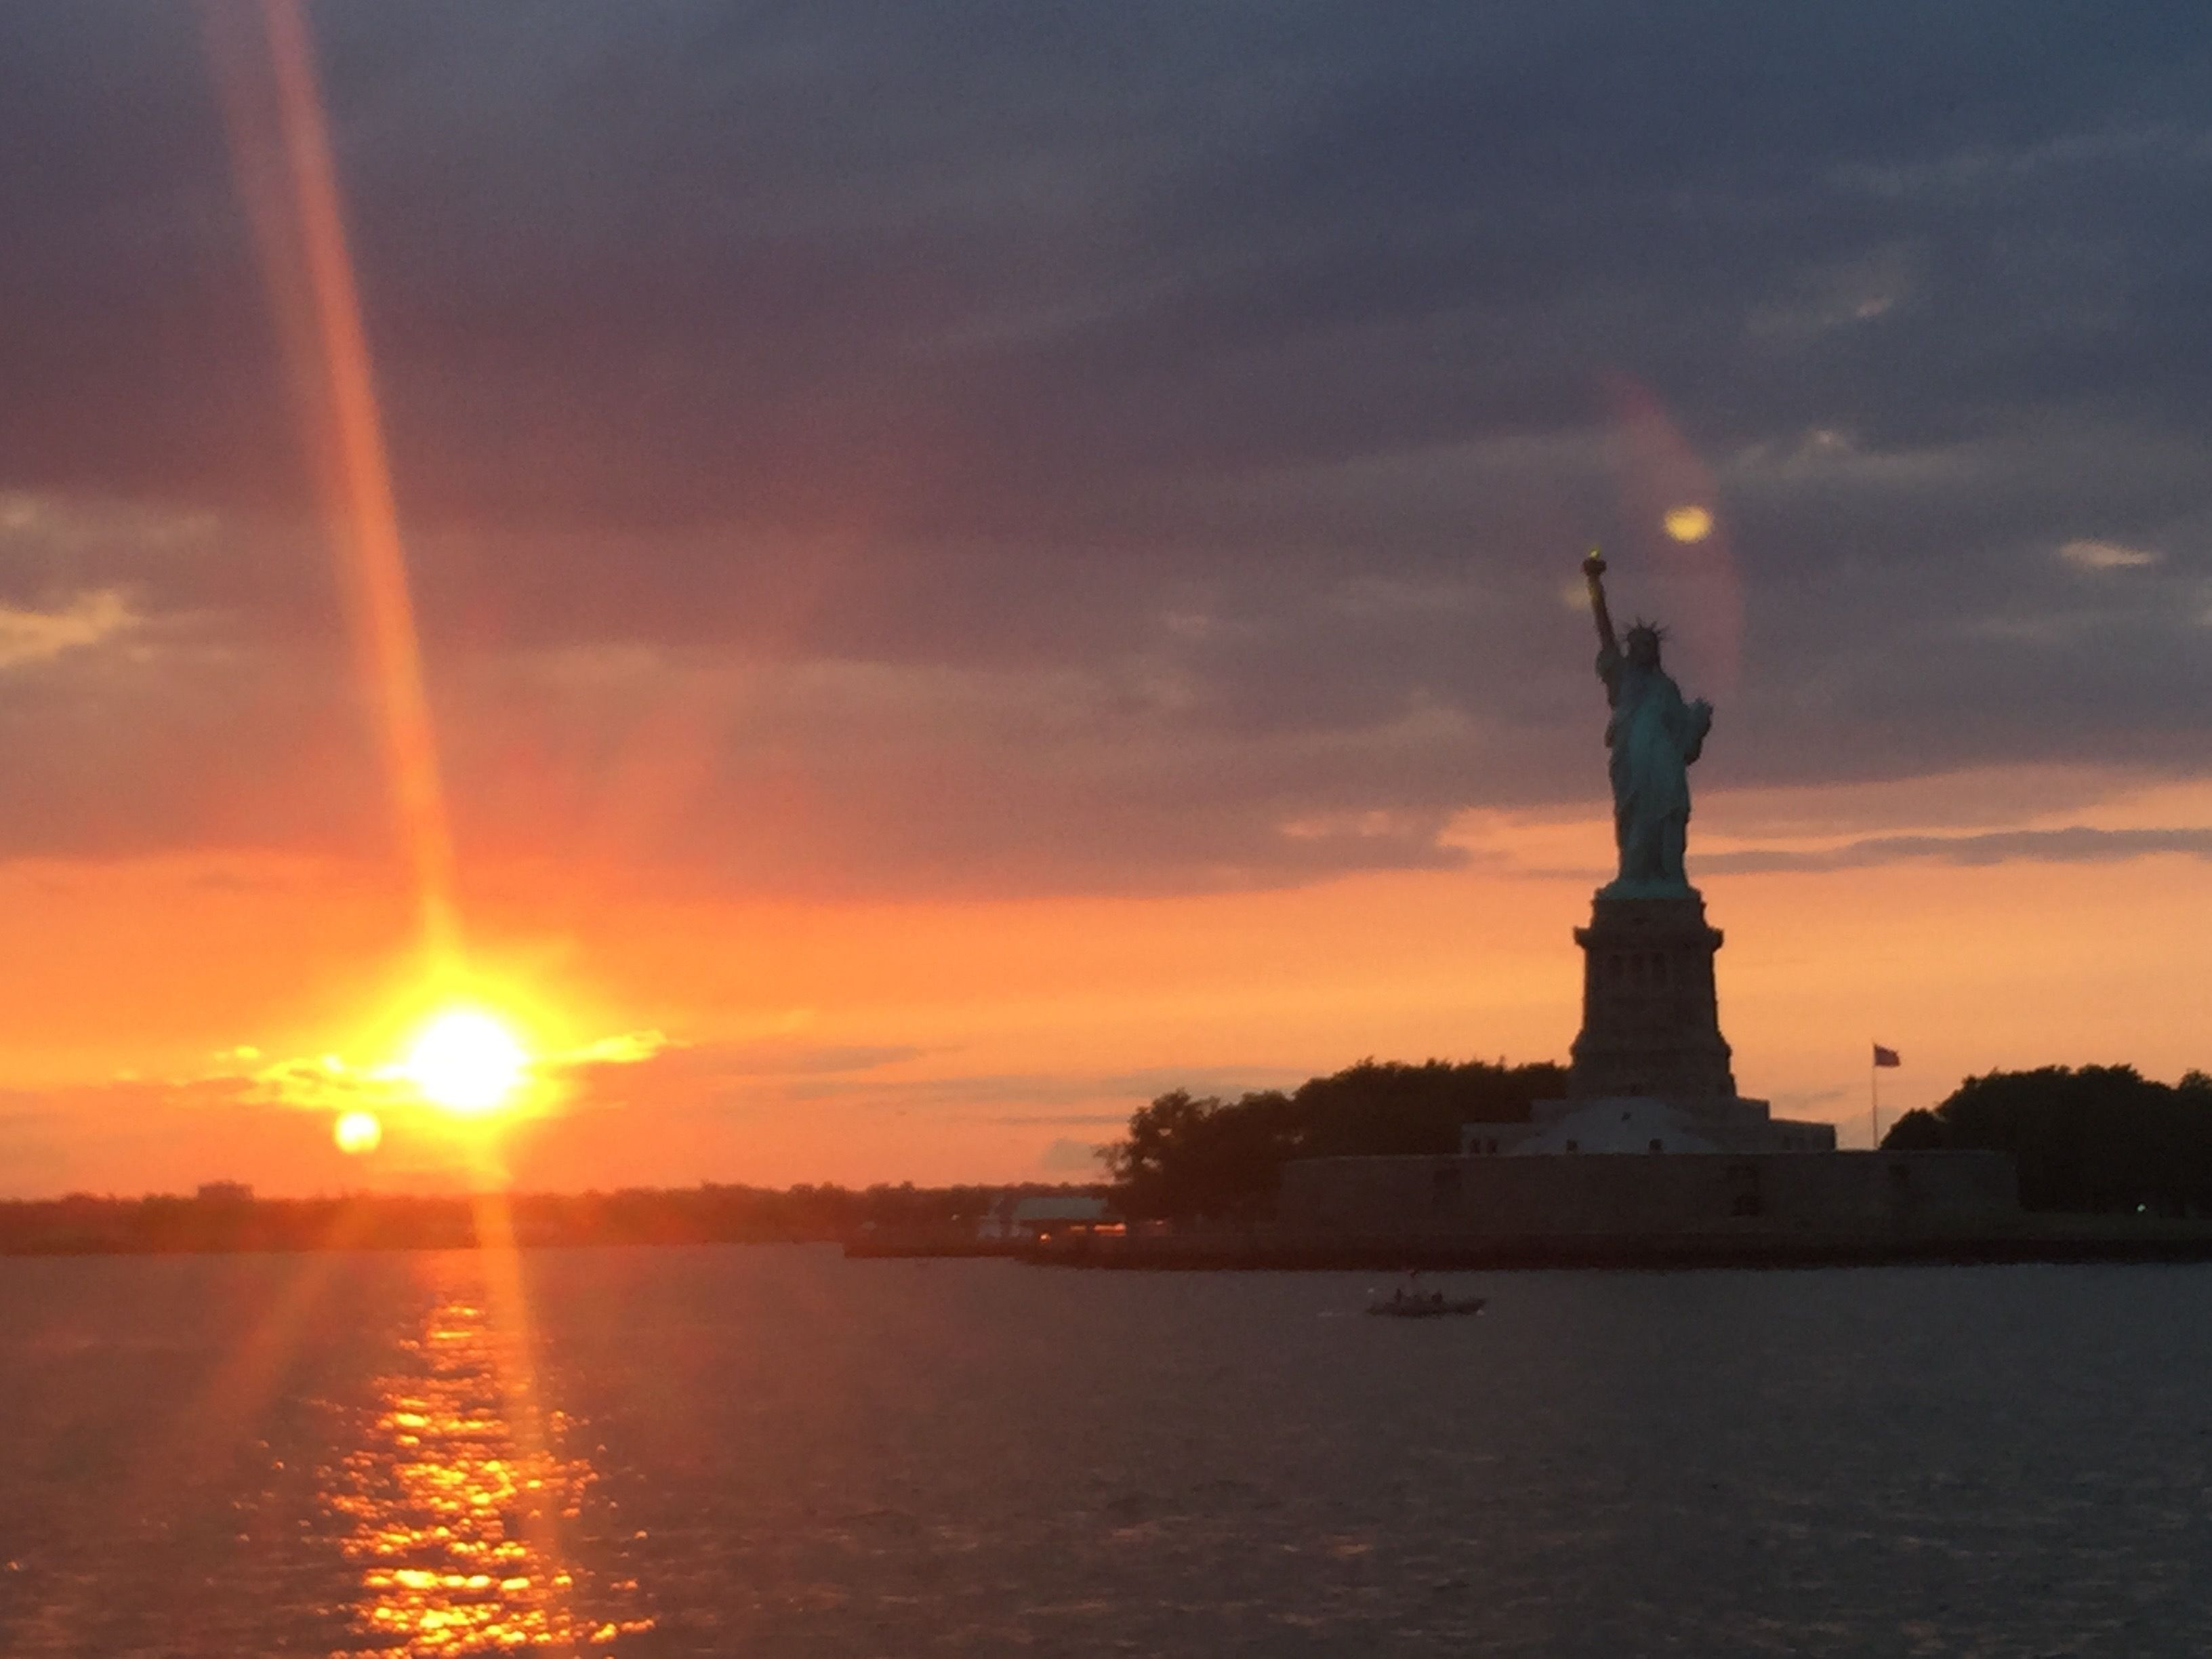 Sunset next to the Statue of Liberty